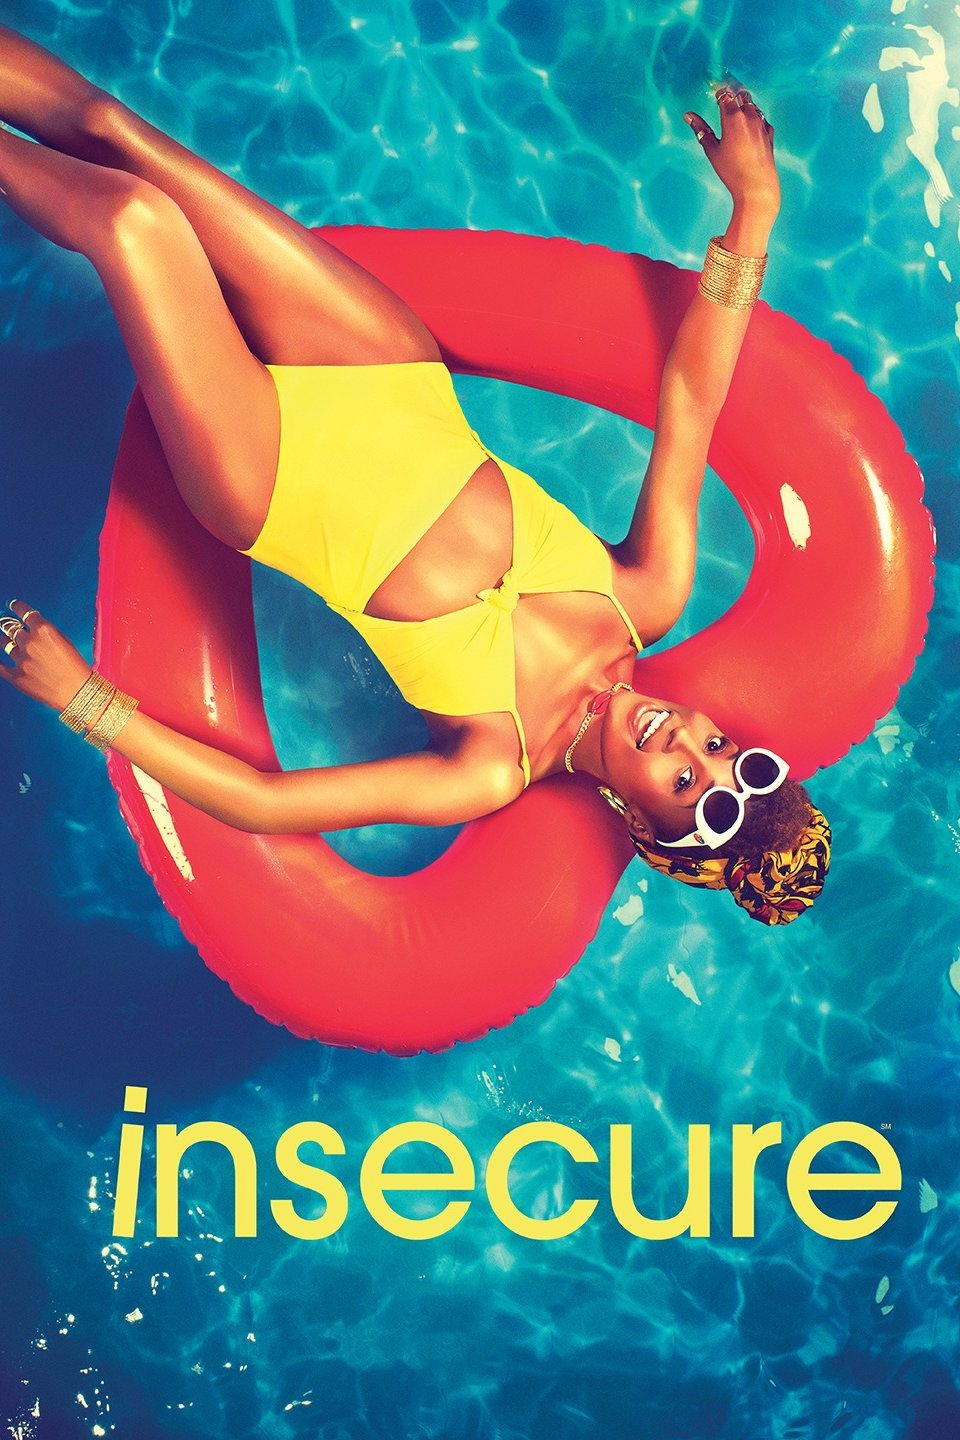 Insecure Season 3 Download HDTV (Episode 2 Added)